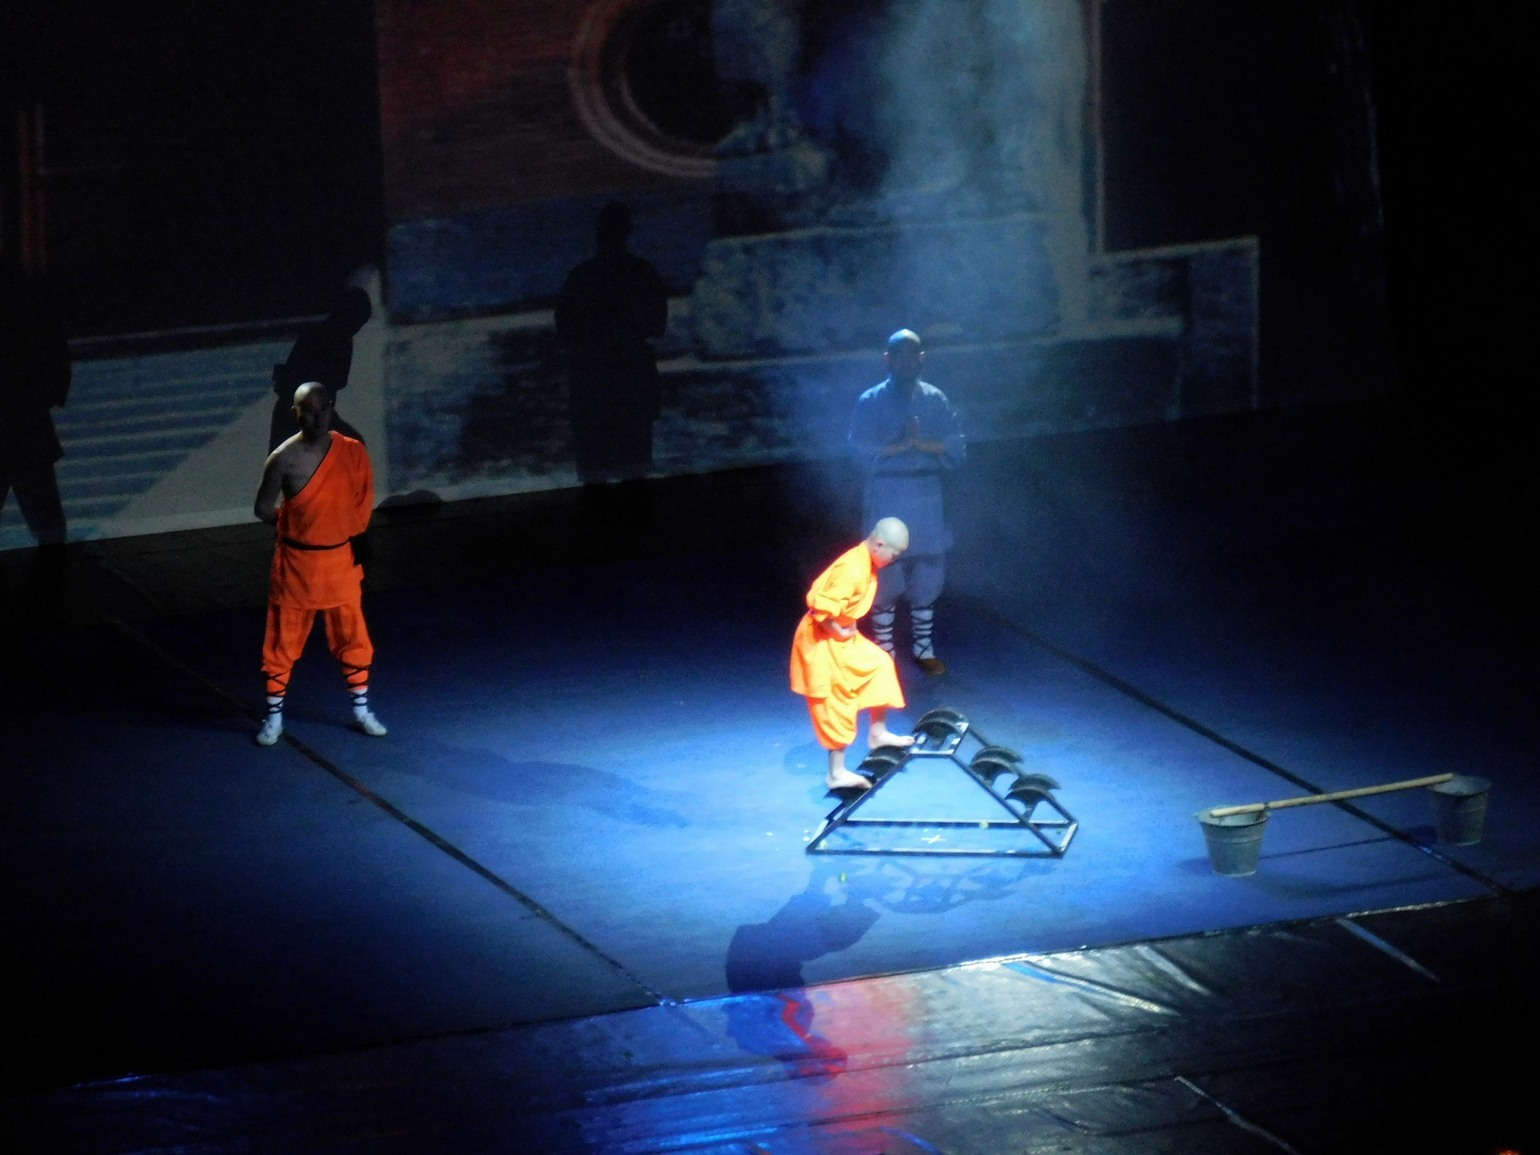 Shaolin monks, Blade Walking, Youg Noble Man, Sofia, Bulgaria